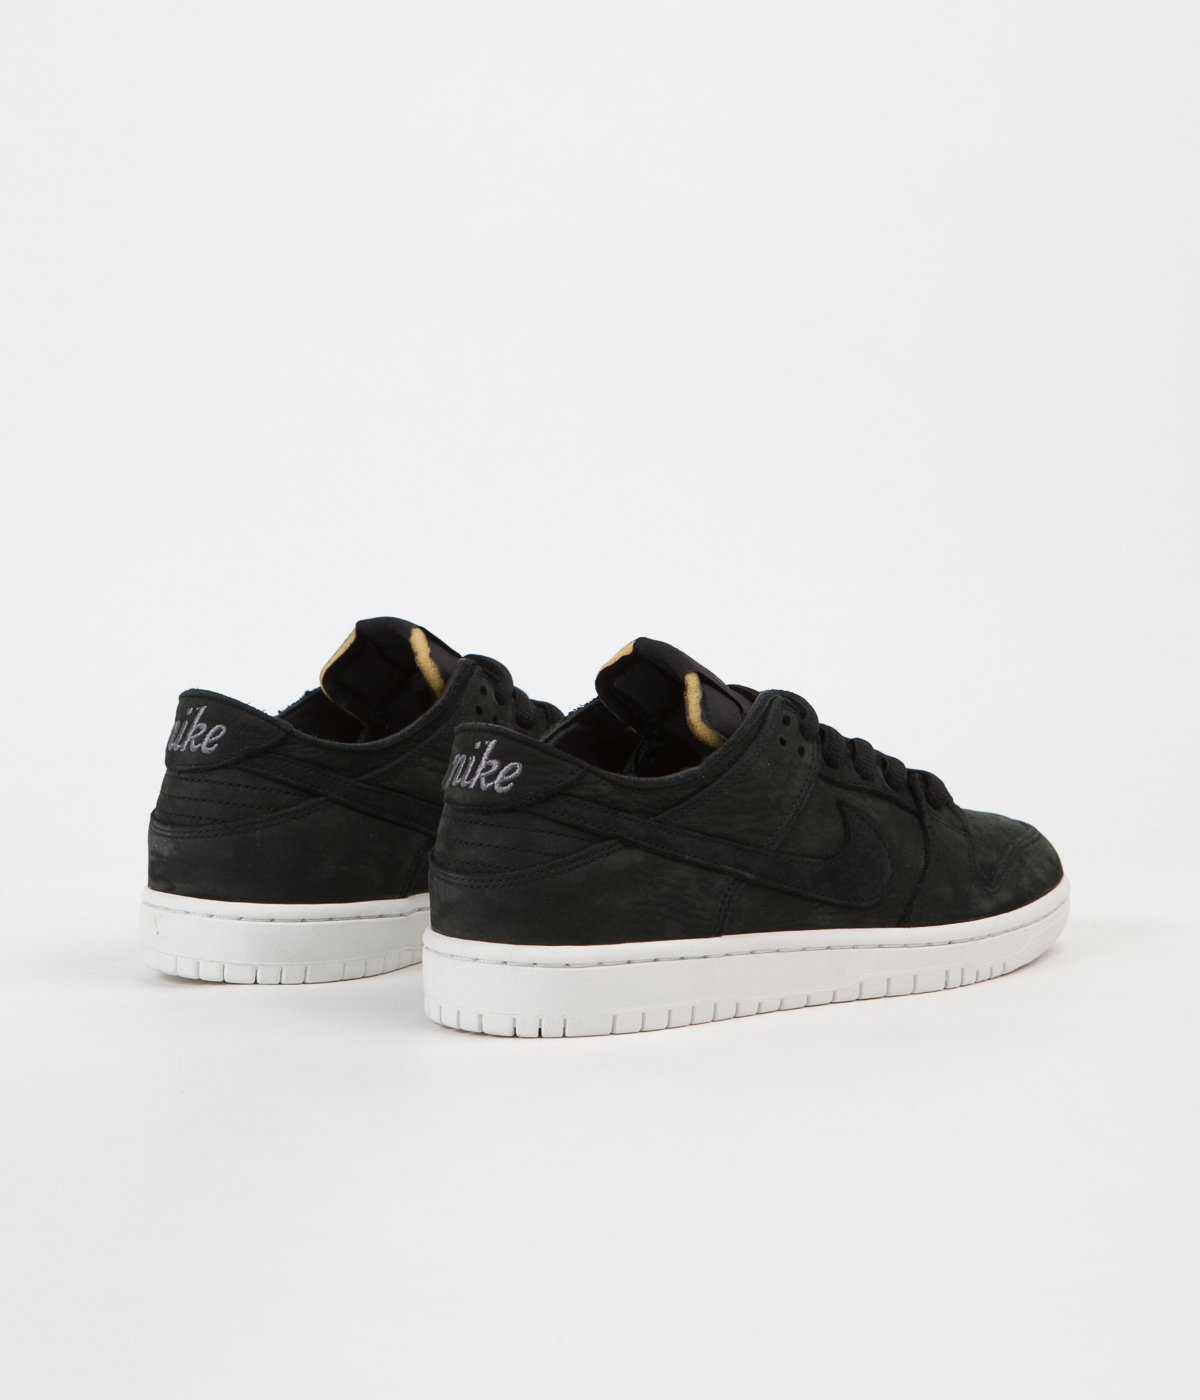 dae9e93ce30c4 nike sb dunk low pro deconstructed shoes